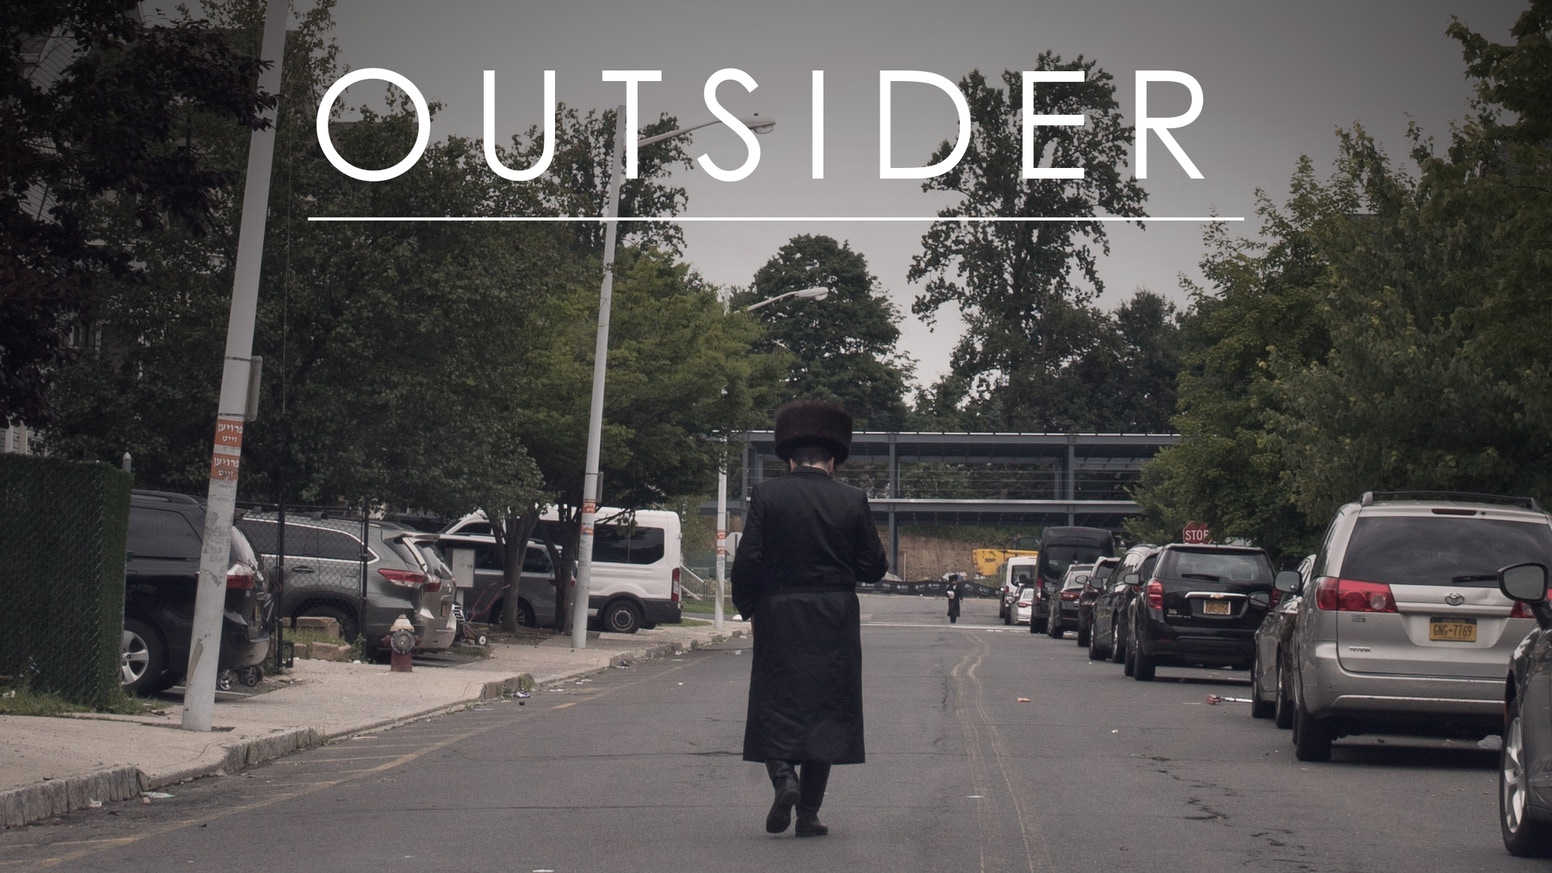 A film exploring growing tensions between Ultra-Orthodox Jewish groups and the rest of the Rockland County Communities.